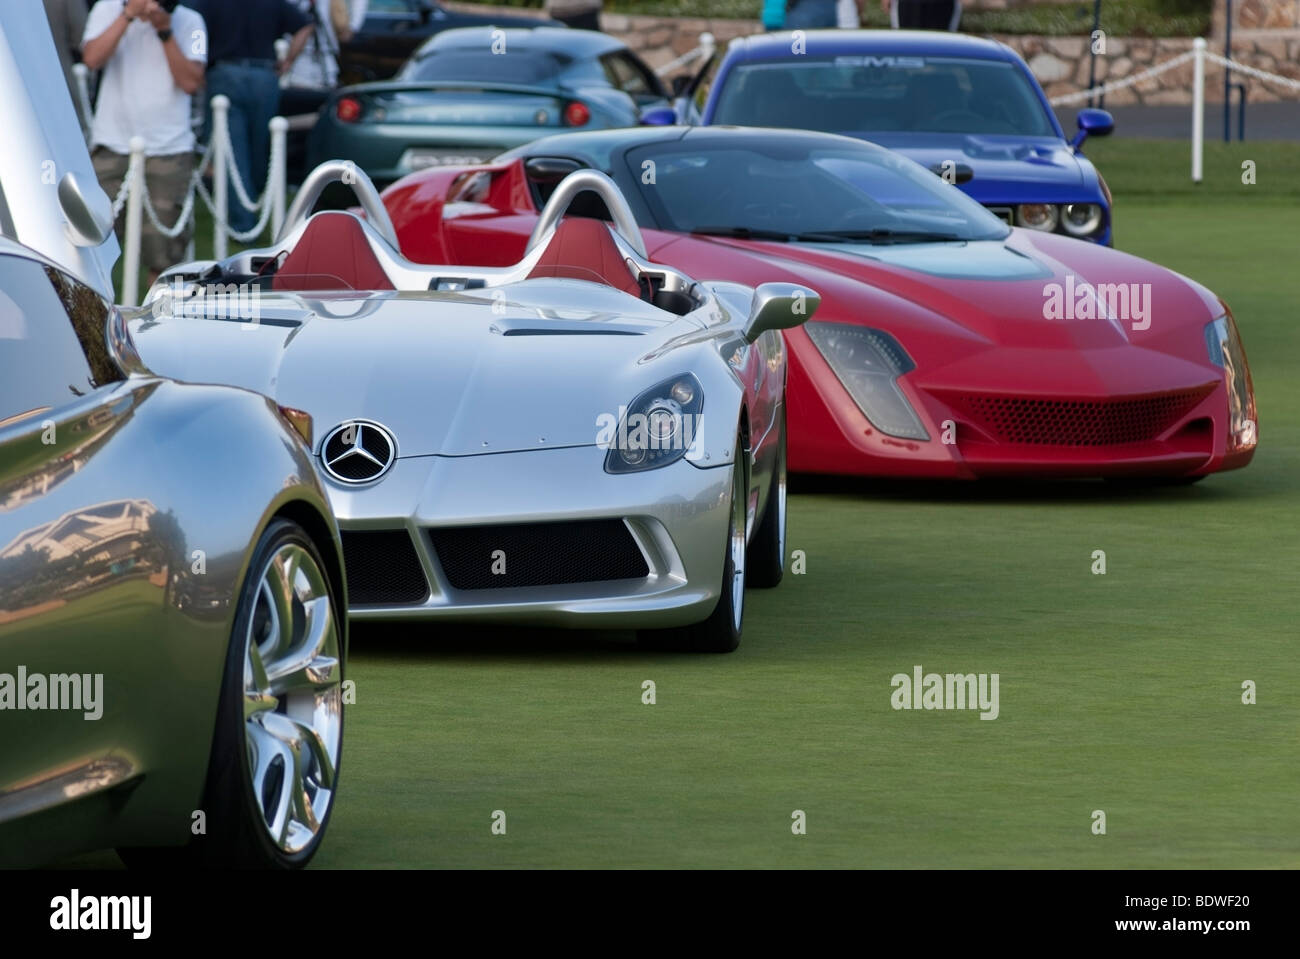 """Mercedes-Benz SLR McLaren Roadster and """"Concept Cars"""" in front of The Lodge at Pebble Beach during the Concours Stock Photo"""